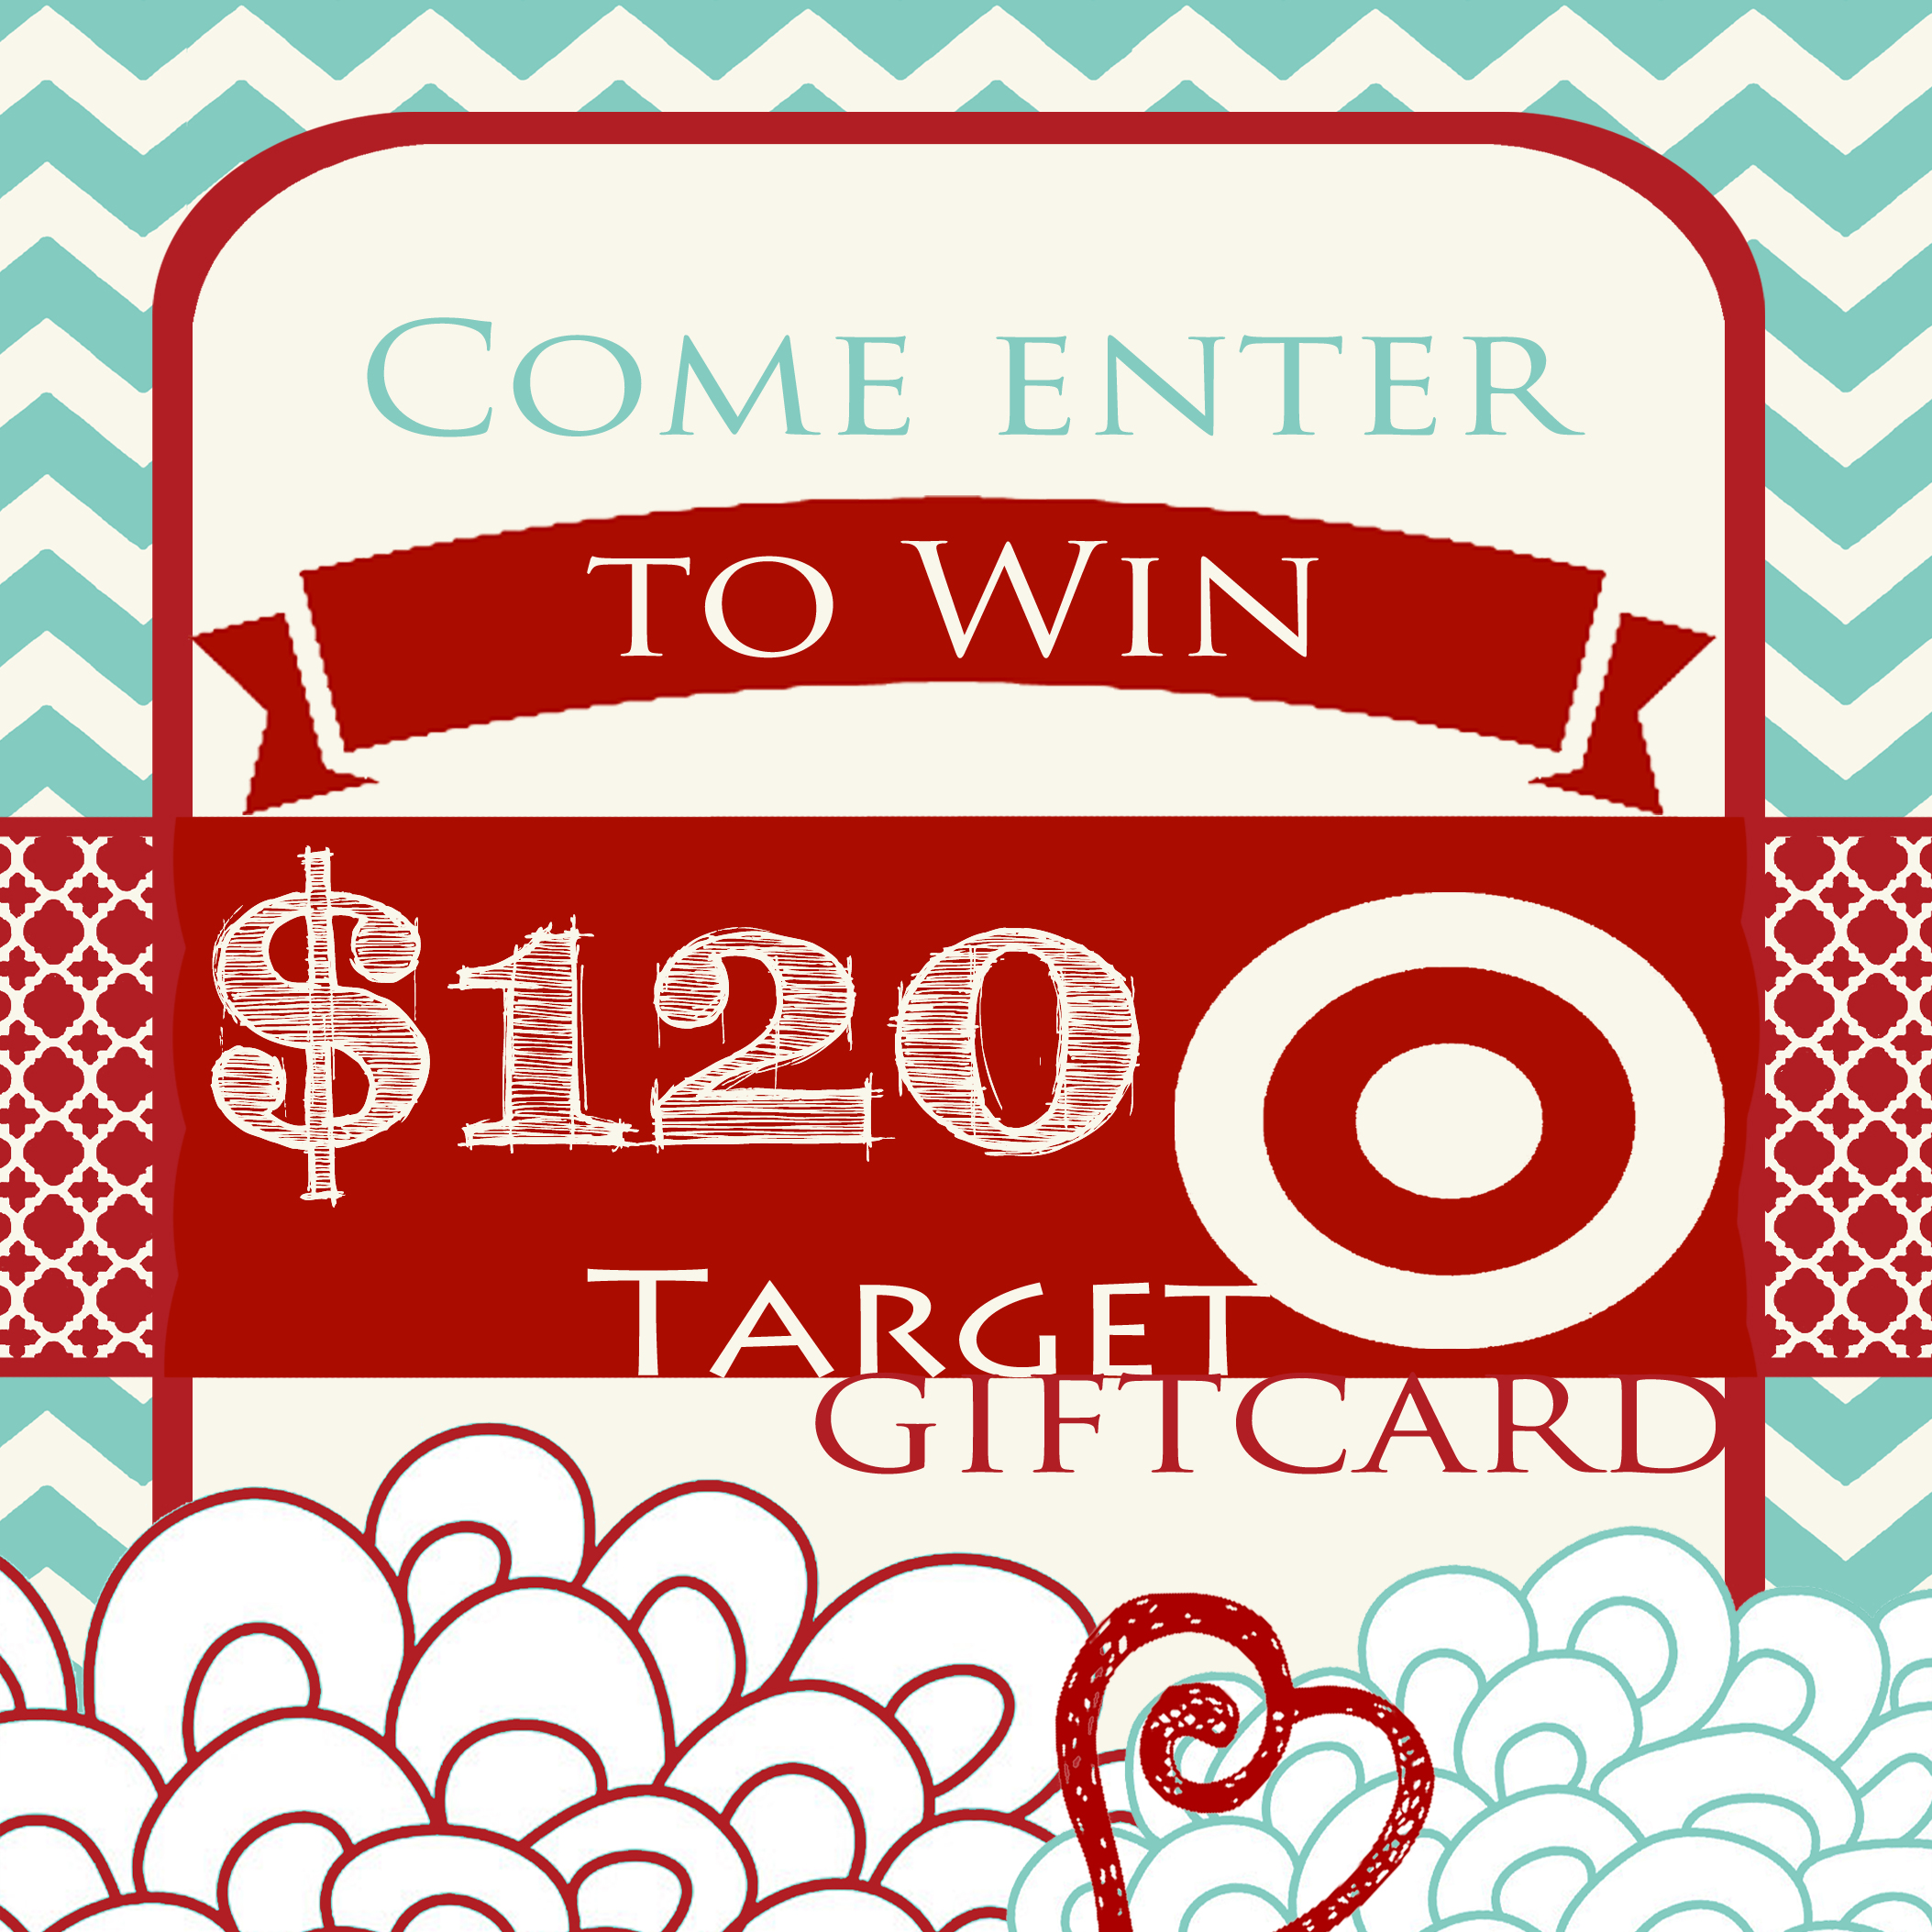 targetgiftcardgiveawaysquare Activities for Boys